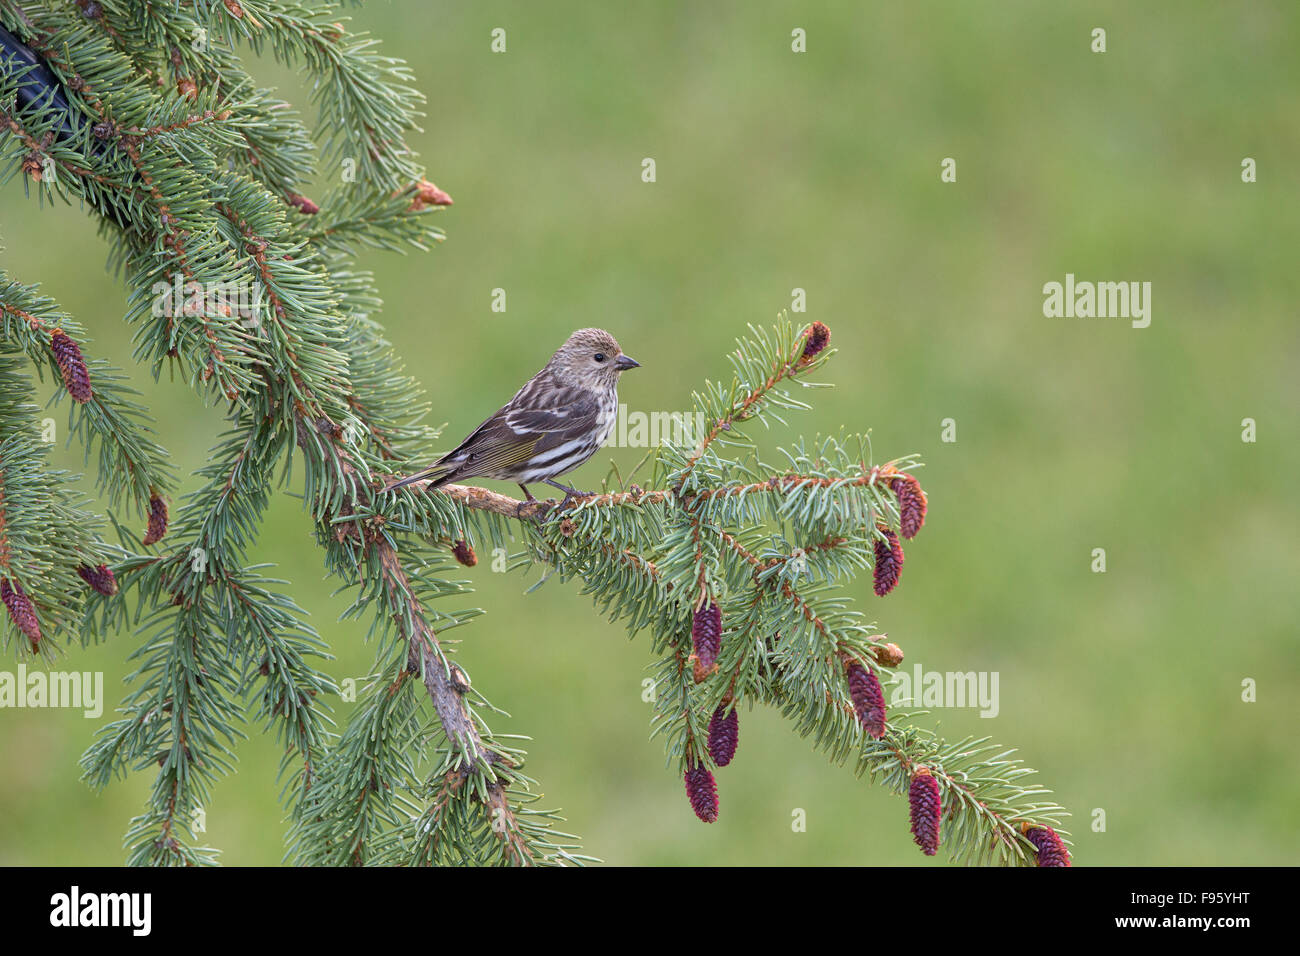 Pine siskin (Spinus pinus), Lac Le Jeune, British Columbia. Bird attracted to perch setup with food. - Stock Image